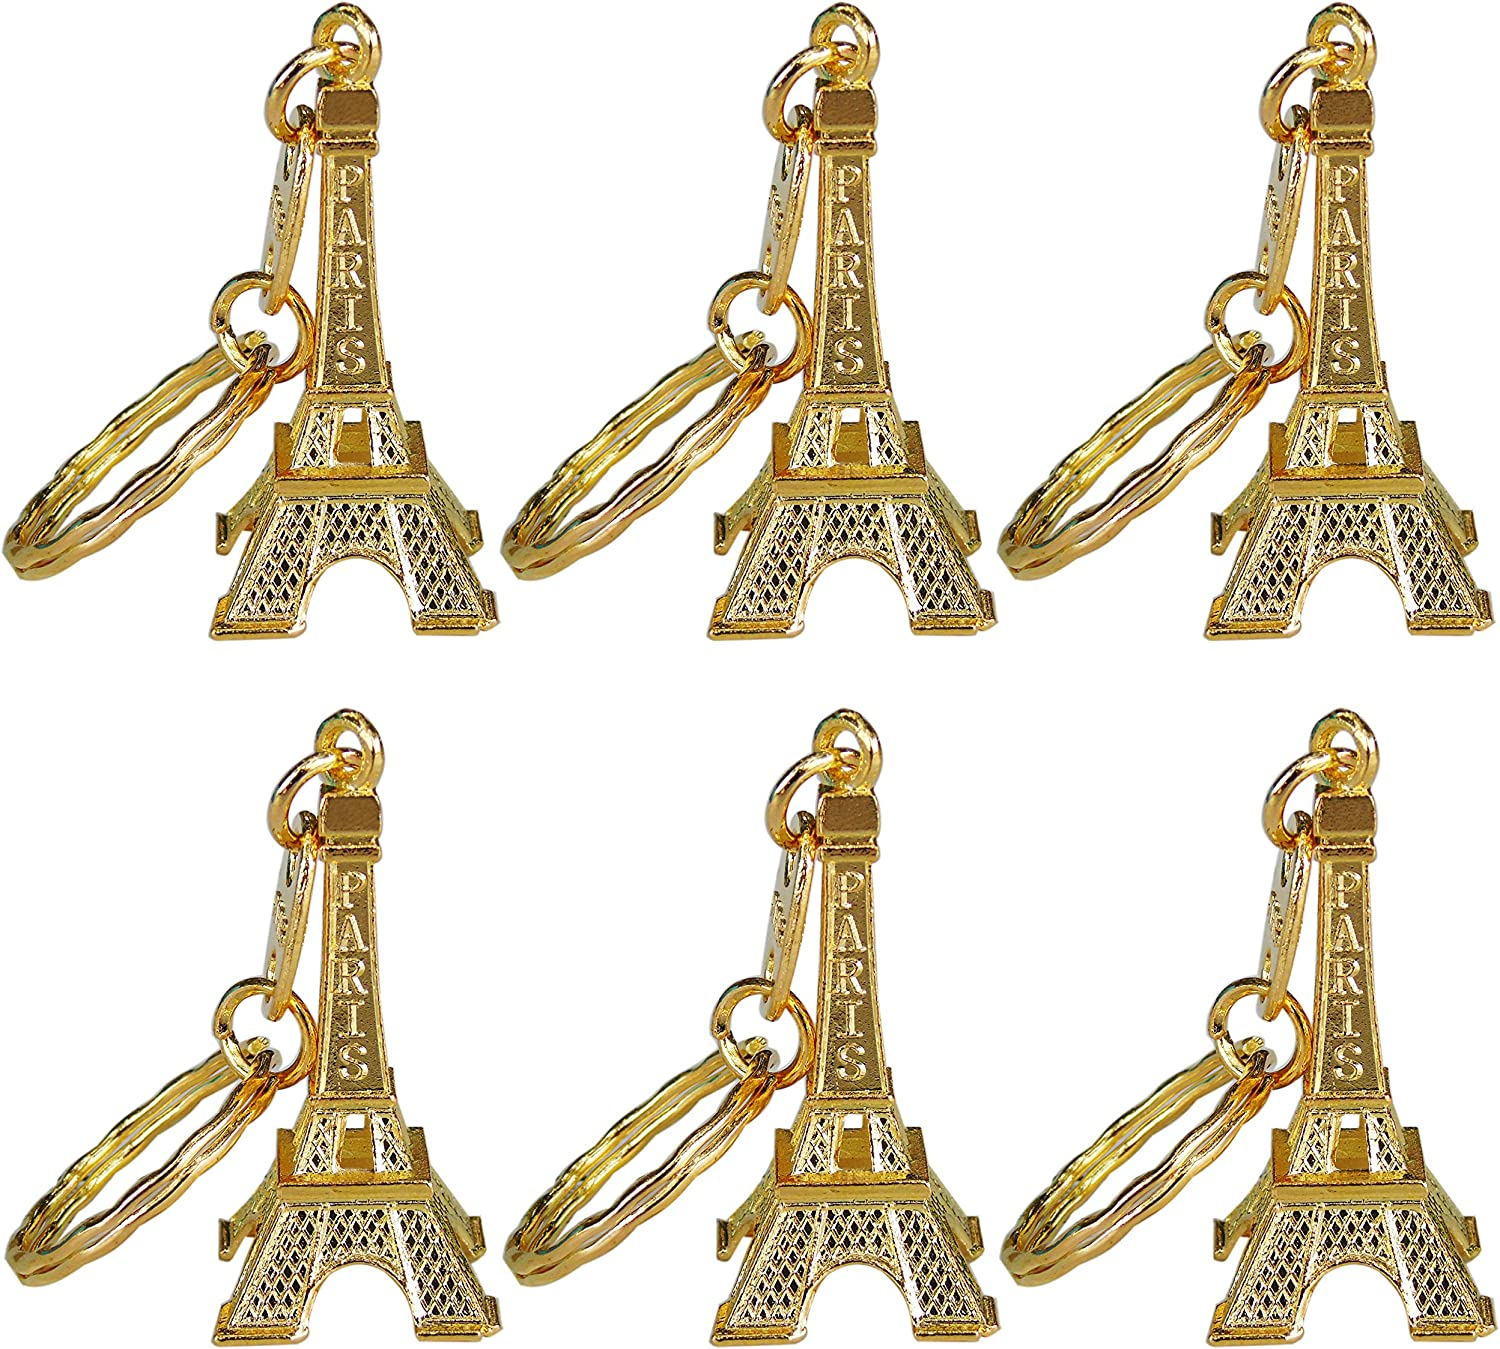 Ceeyali 20 Pcs 5cm Metal Paris Eiffel Tower Craft Art Statue Model for Table Decor,Cake Topper,Gifts,Party,Jewelry Stand Holder,Home Decoration (Gold Color 20 Pcs)